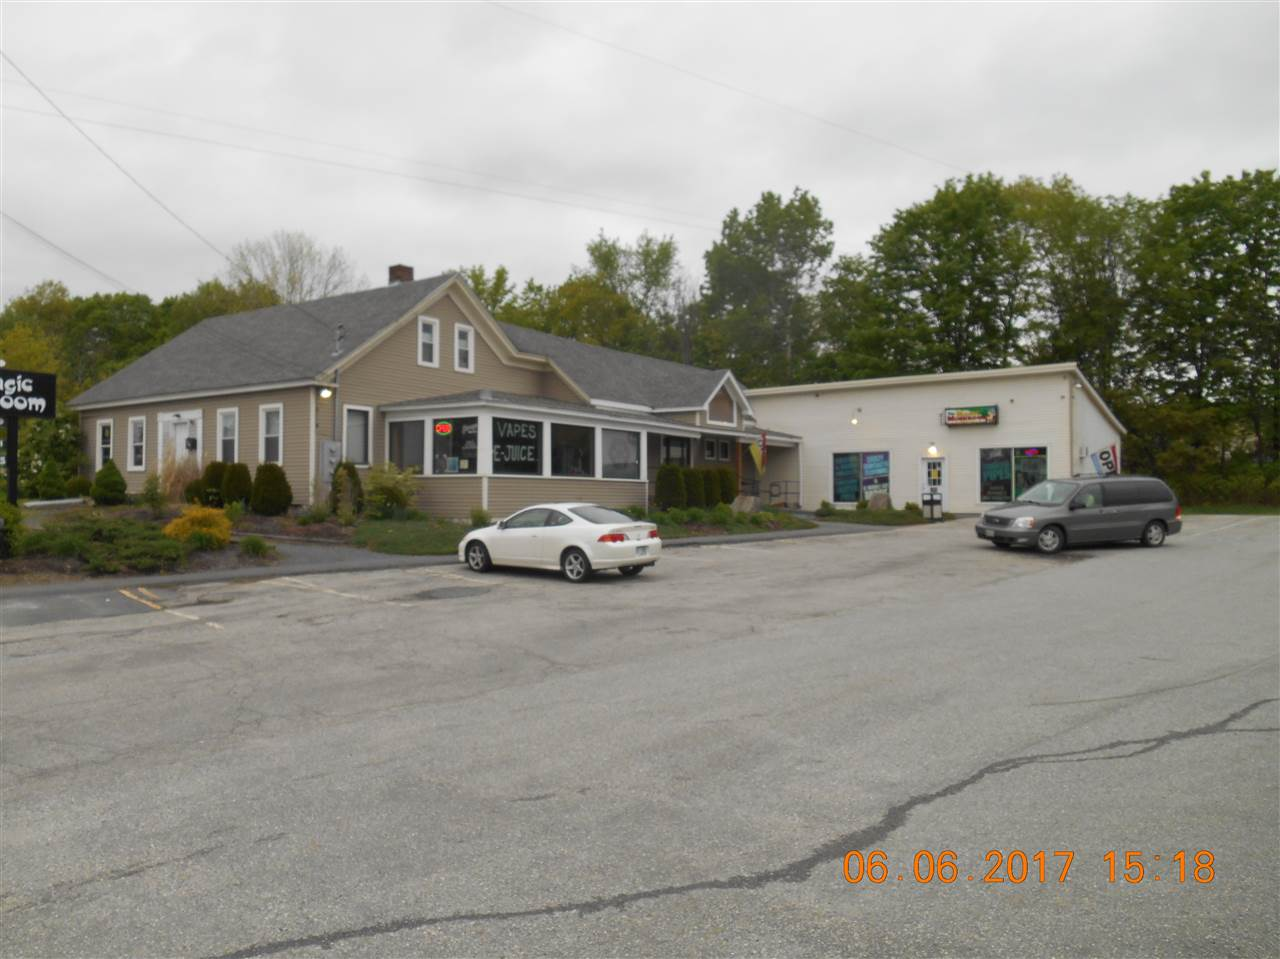 124 Washington st., Claremont, NH 03743